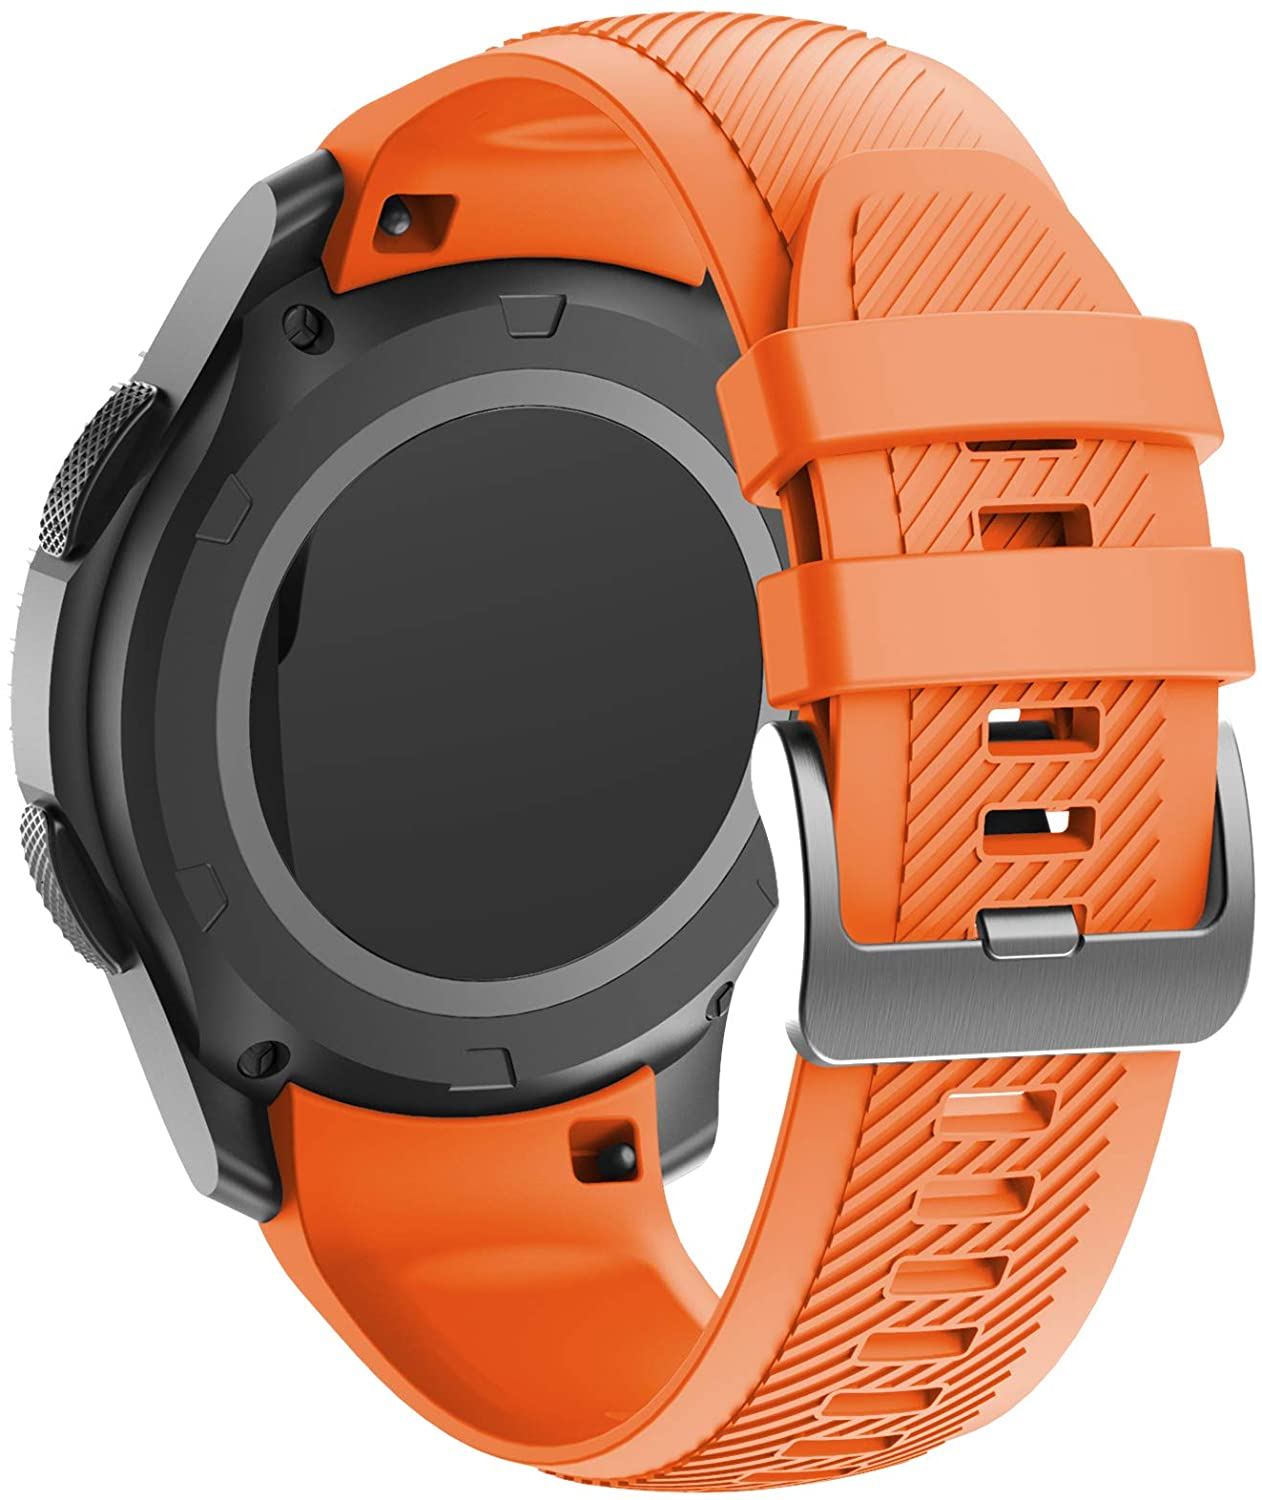 ANCOOL Compatible with Gear S3 Bands Soft Silicone Straps Seamless Connection Watch Bands Replacement for Gear S3 Frontier/Classic/Galaxy Watch 46mm Smartwatches, Orange